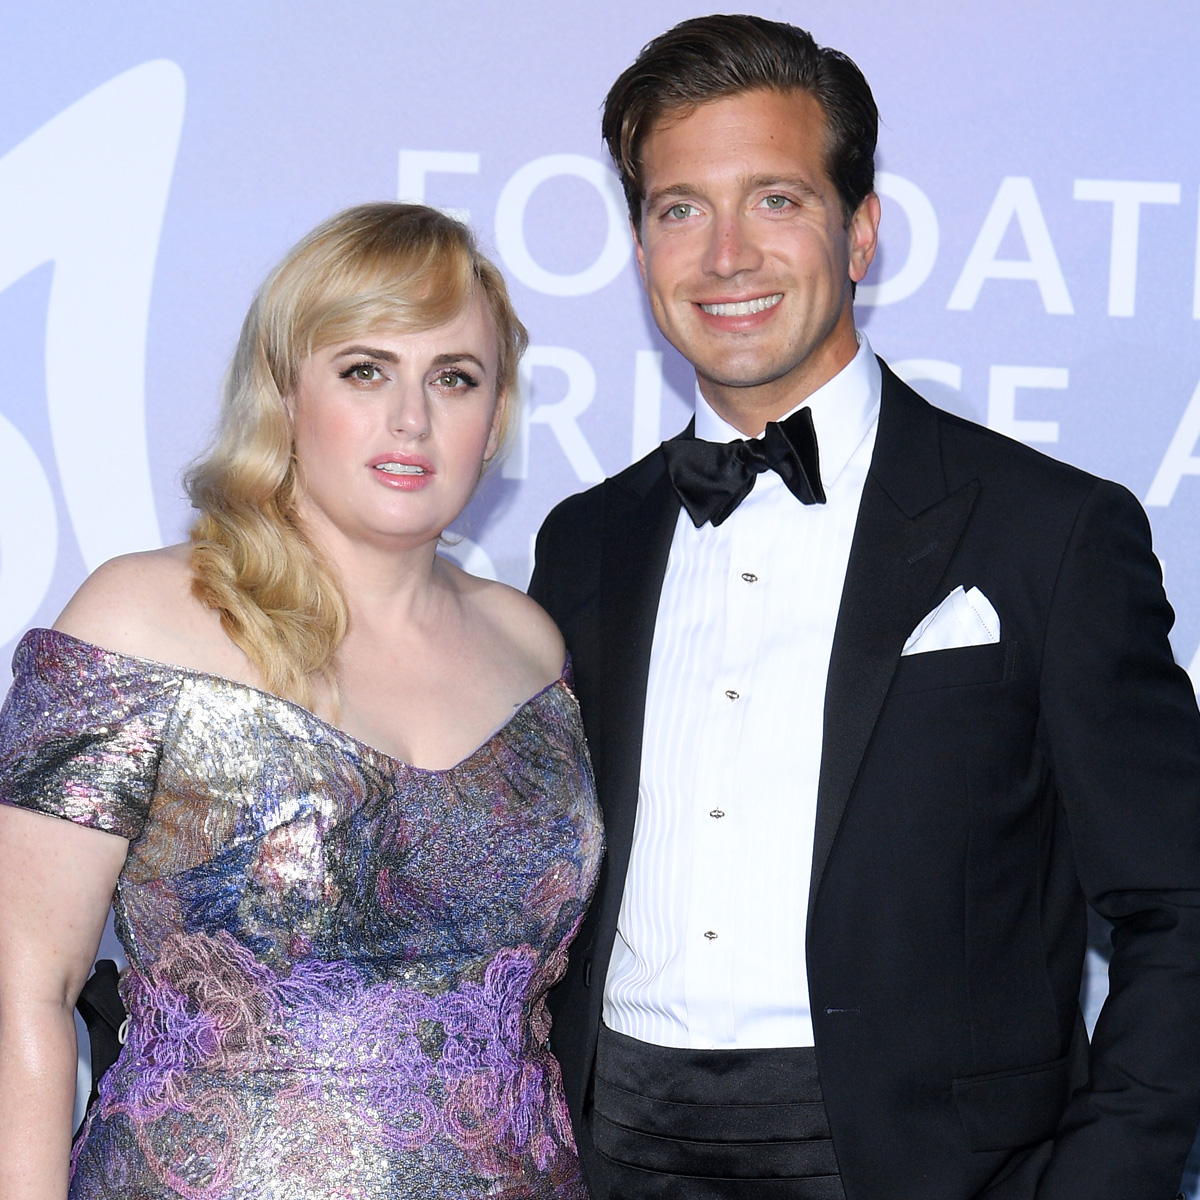 """Rebel Wilson Cheekily Reveals She and Boyfriend Jacob Busch """"Do a Lot of Exercise Together"""""""